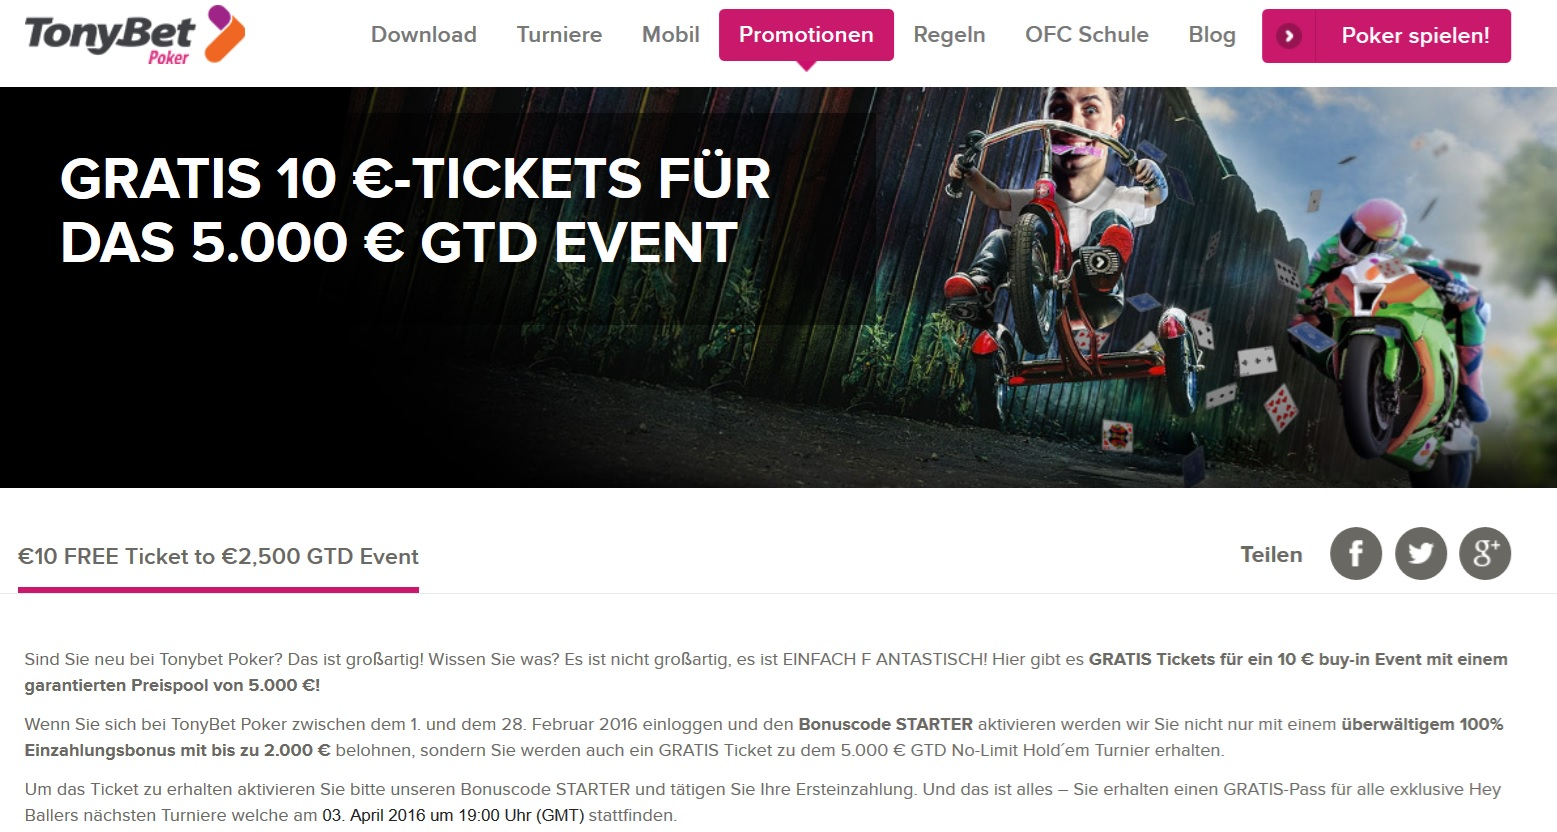 Tonybet Free Ticket Aktion Neukunden